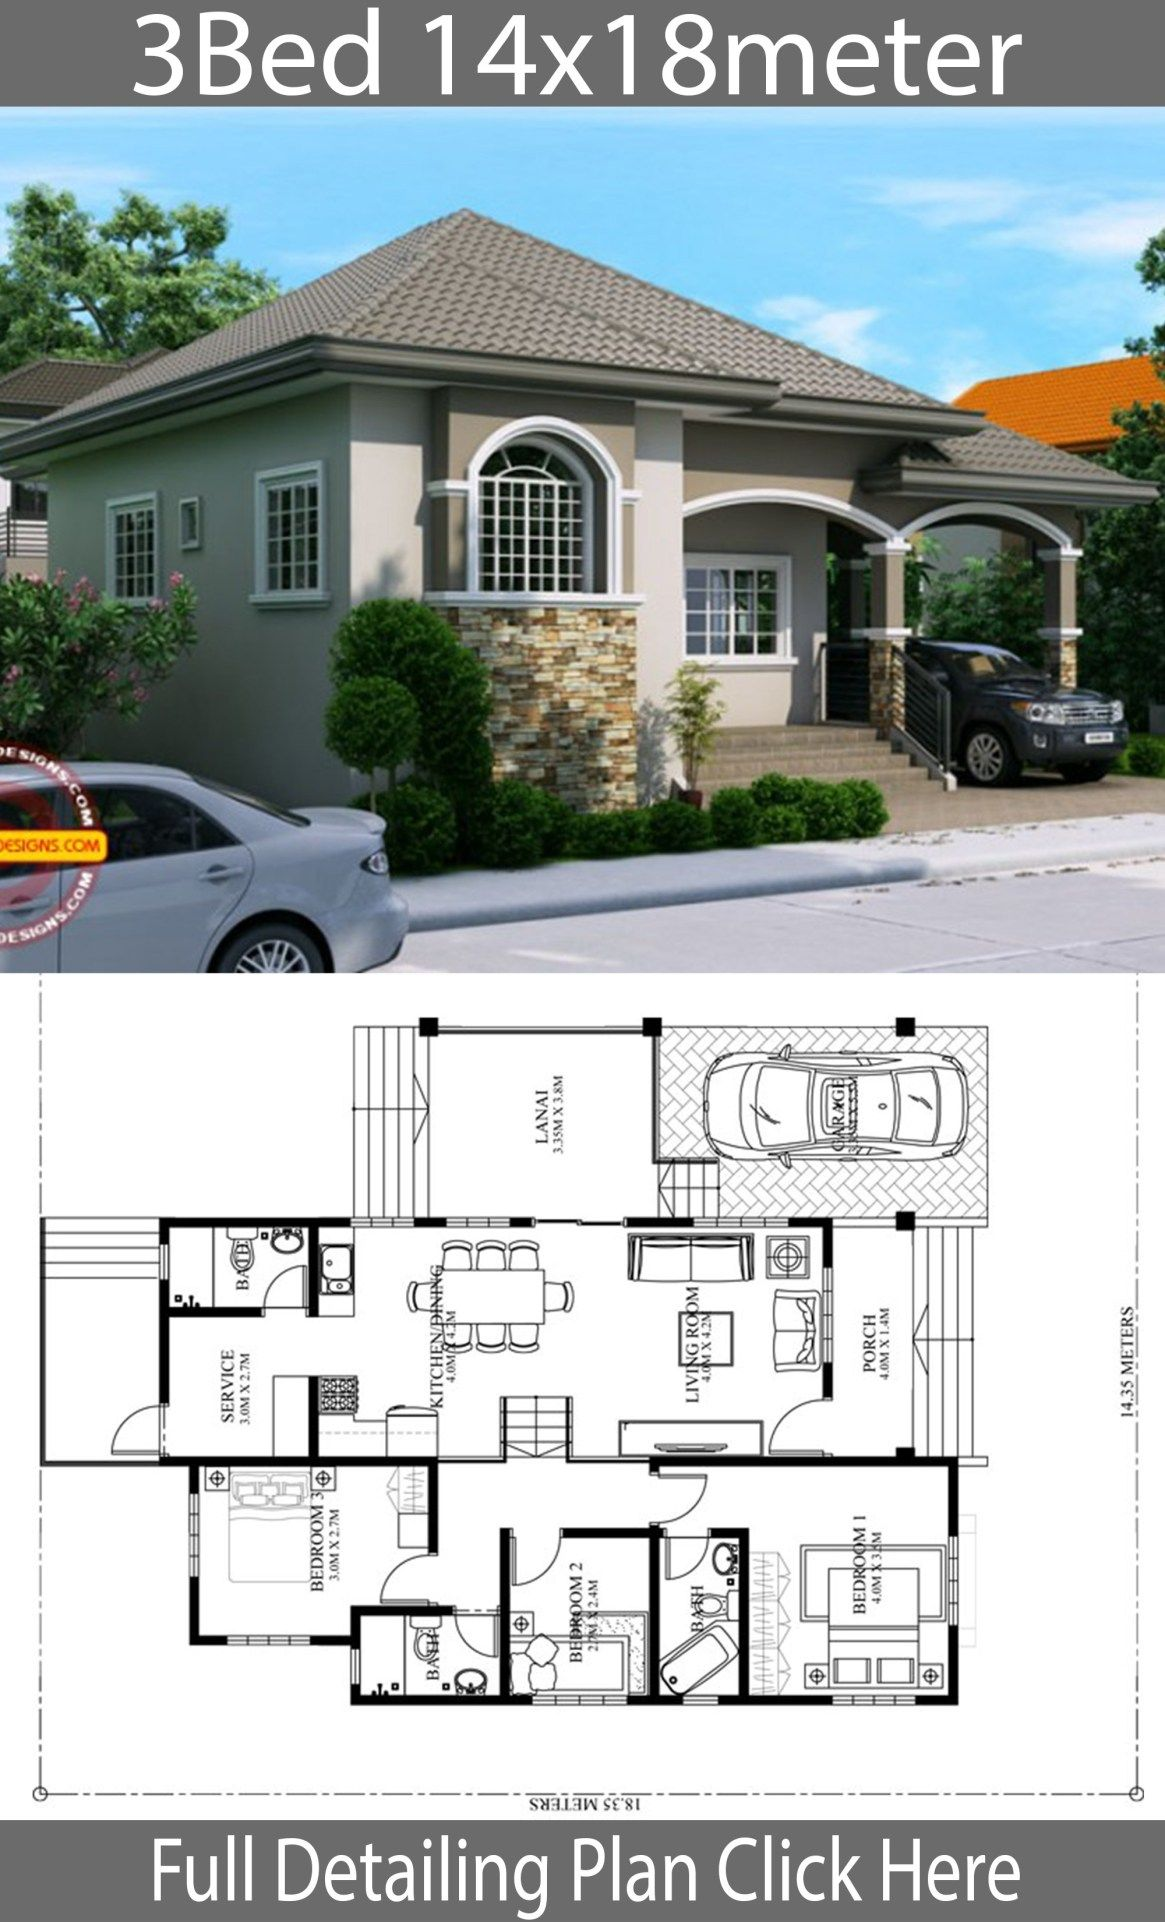 Home Design Plan 14x18m With 3 Bedrooms Home Design With Plansearch Model House Plan Bungalow House Floor Plans Bungalow House Design